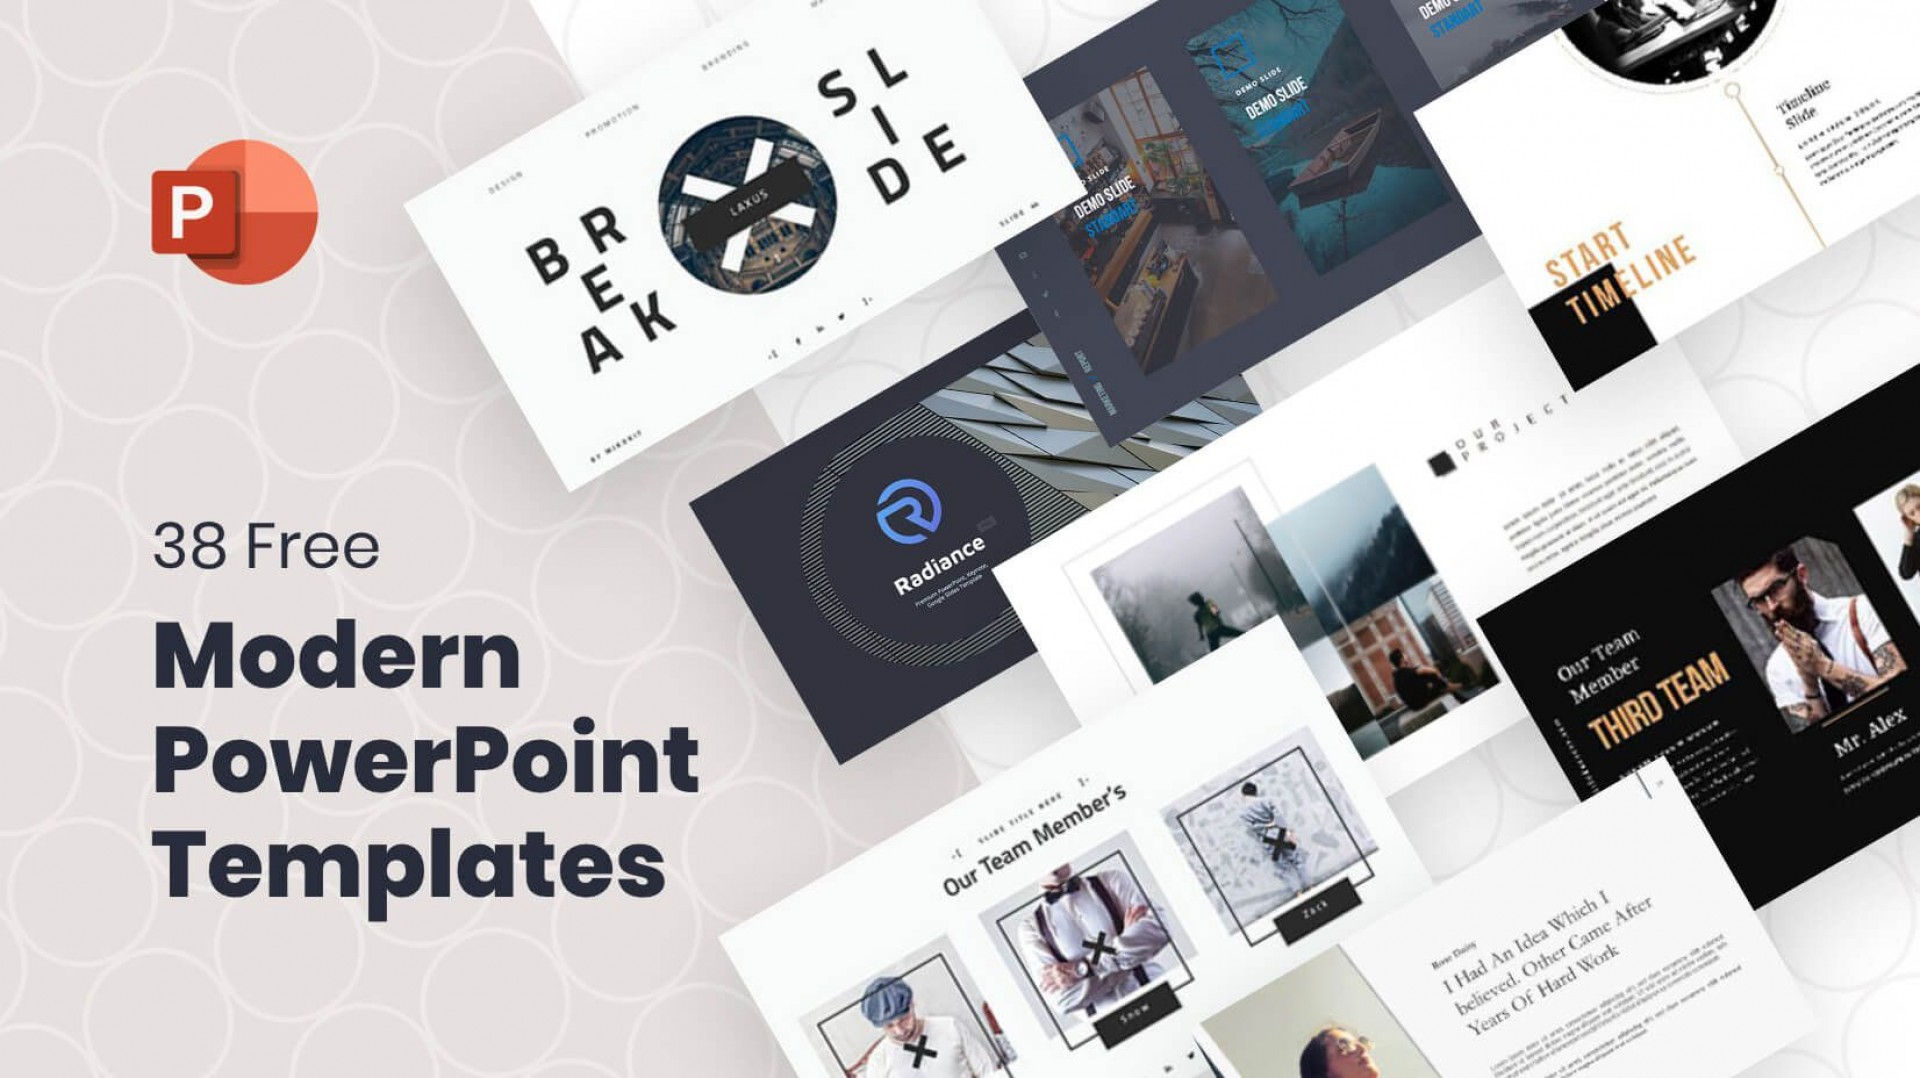 003 Stirring Free 3d Animated Powerpoint Template Download Idea  2017 2016 Tinyppt1920